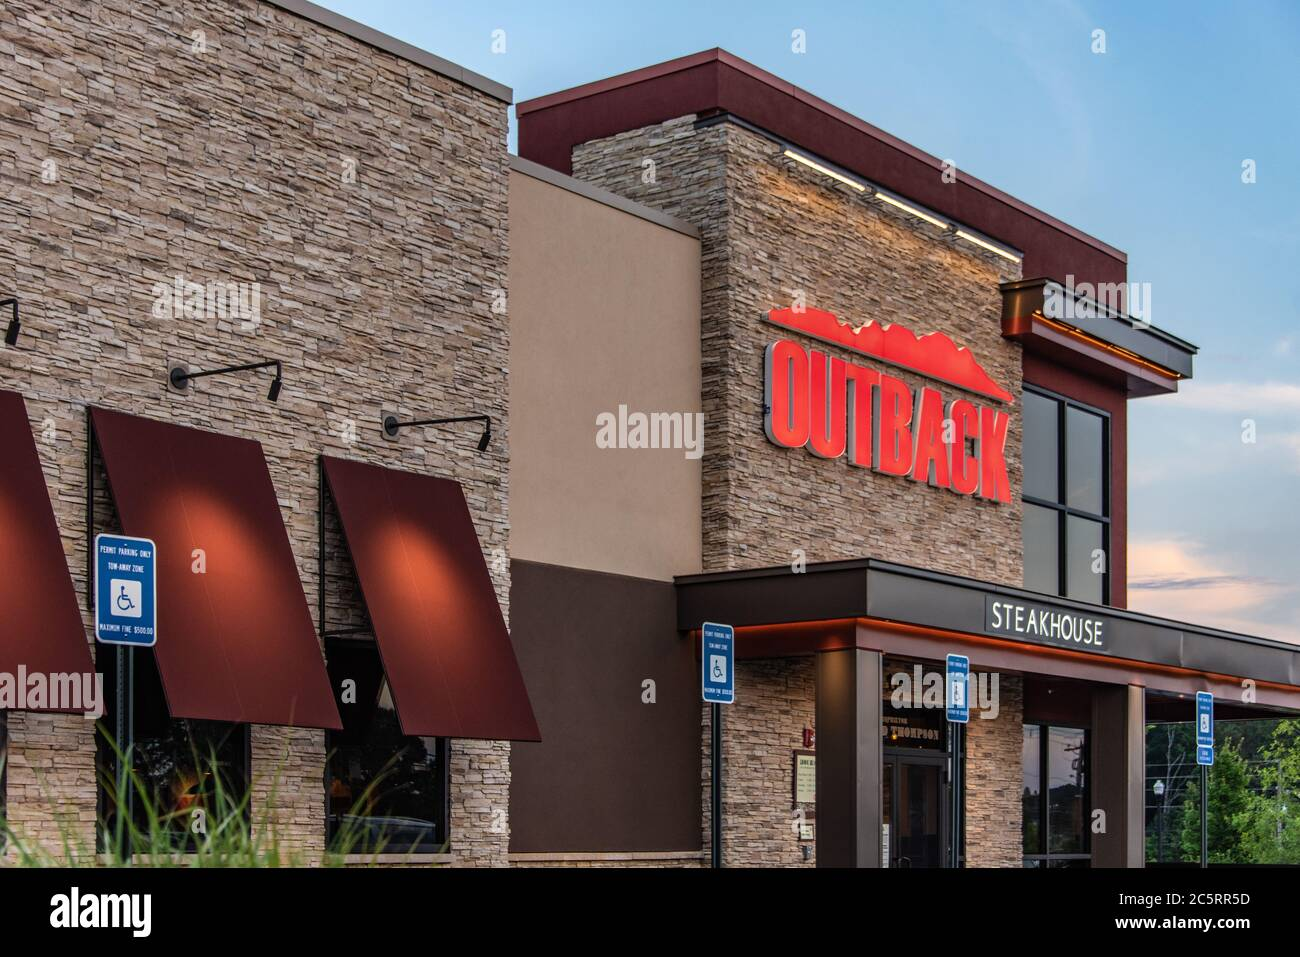 outback steakhouse florida high resolution stock photography and images alamy alamy